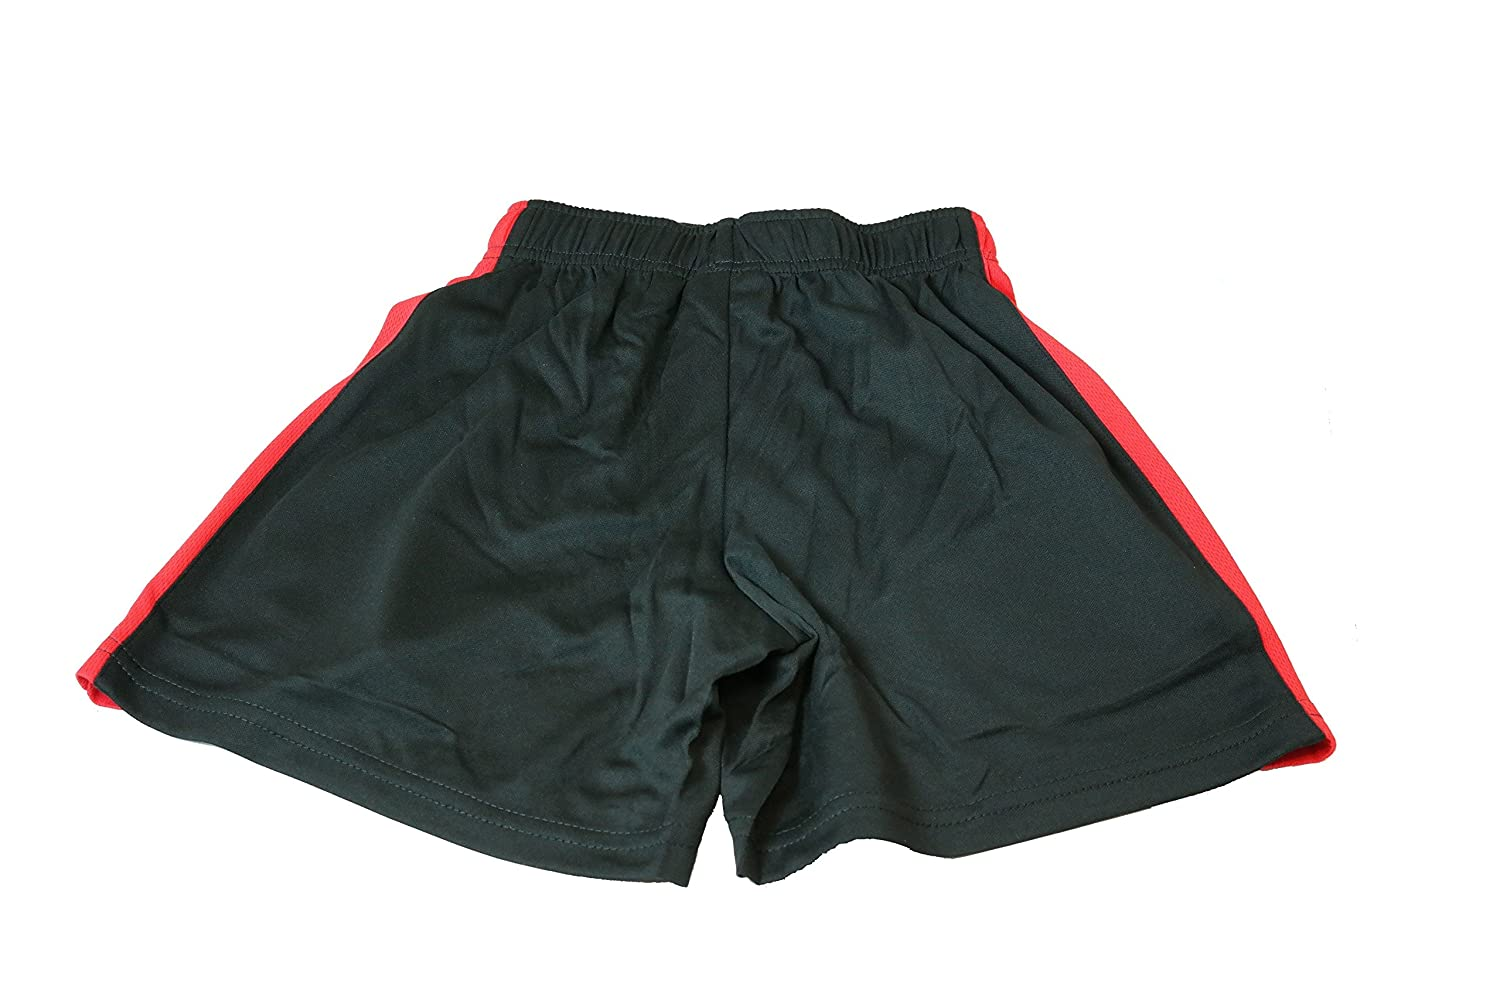 237a8d3e8bb Amazon.com  Arsenal FC Authentic Official Licensed Product Youth Soccer  Shorts - 001  Sports   Outdoors